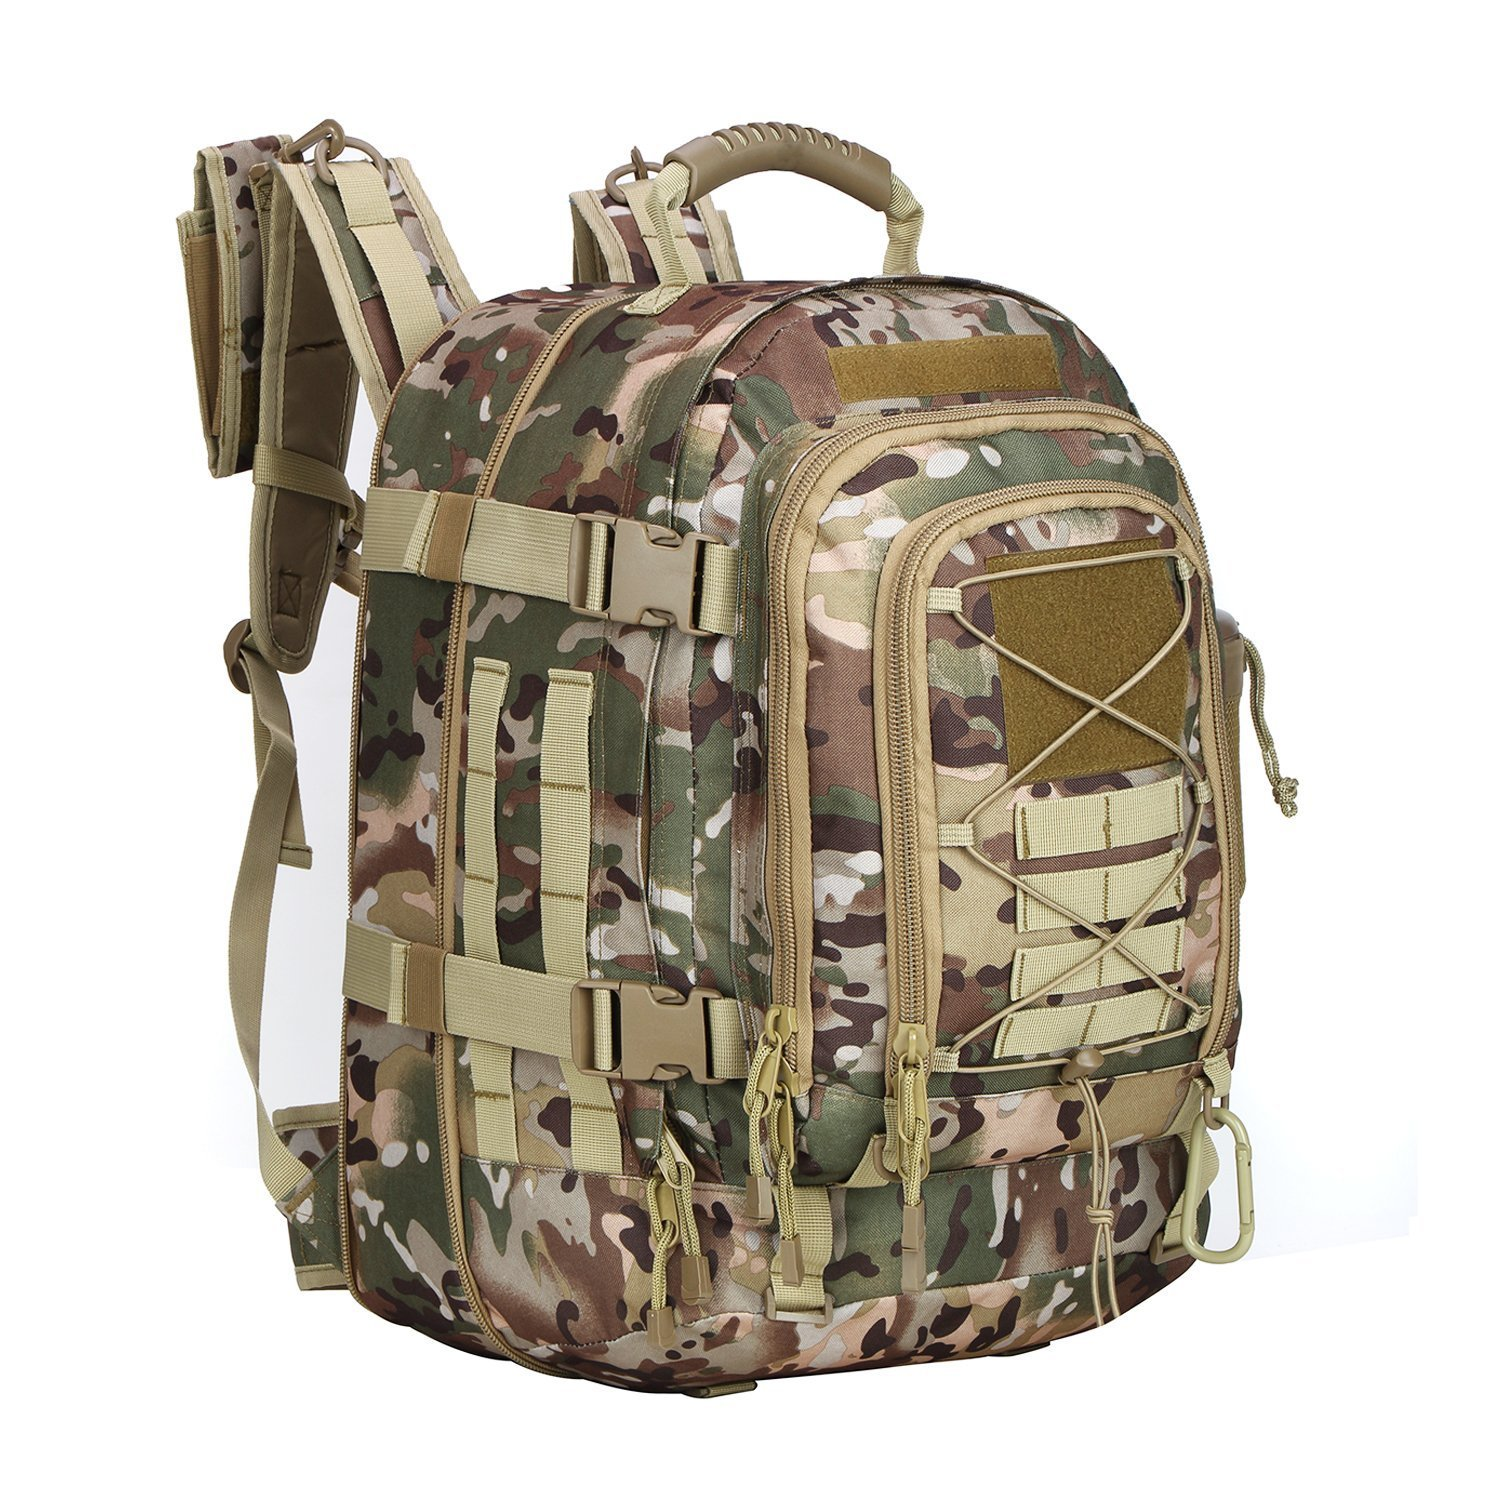 ARMYCAMOUSA [Promotions] 40L Outdoor Expandable Tactical Backpack Military Sport Camping Hiking Trekking Bag [Factory Store] (OCPC 08001)